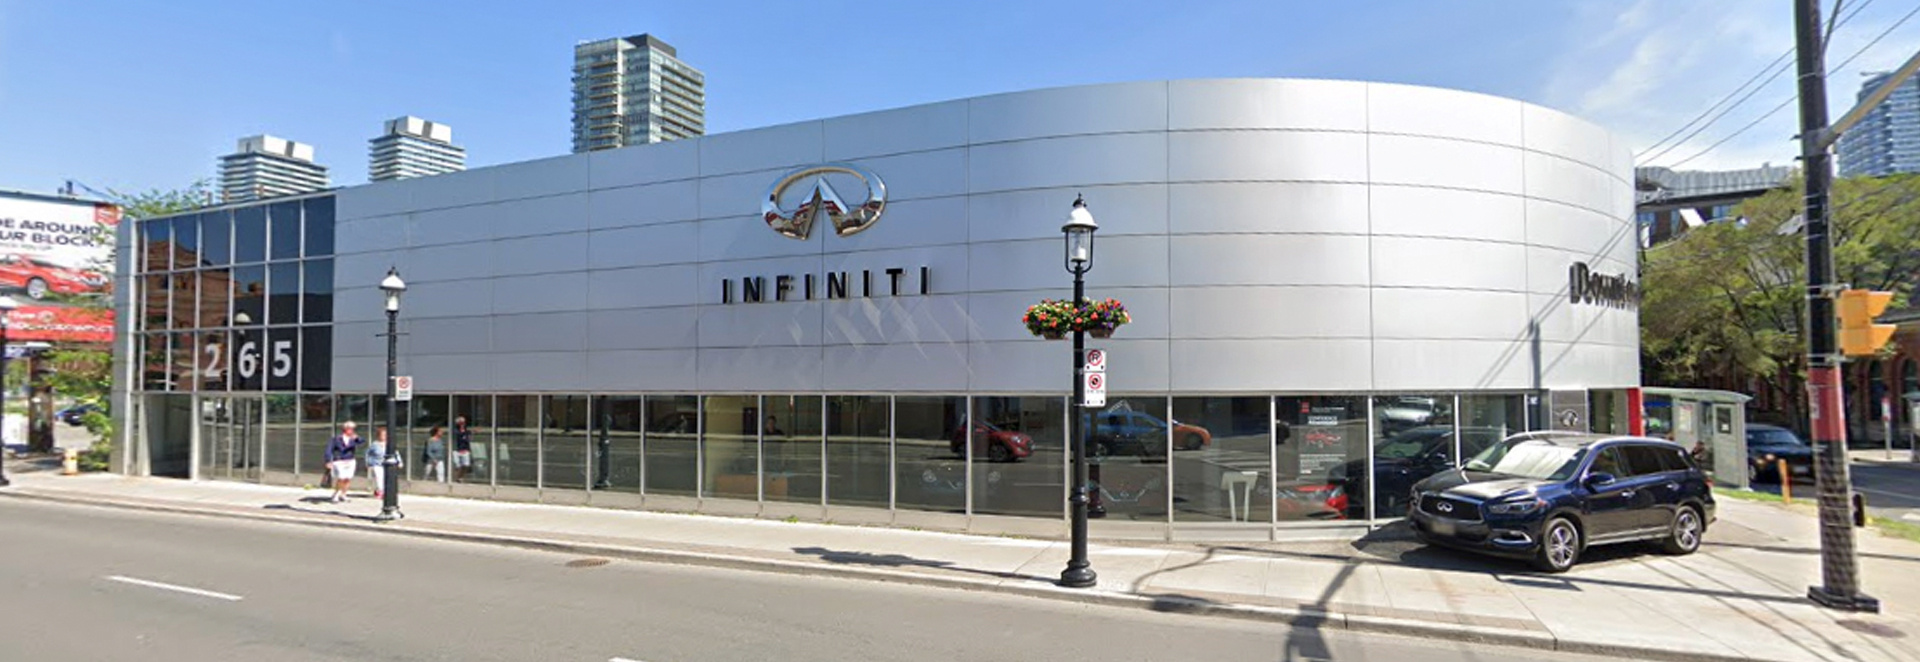 Infiniti Downtown Building